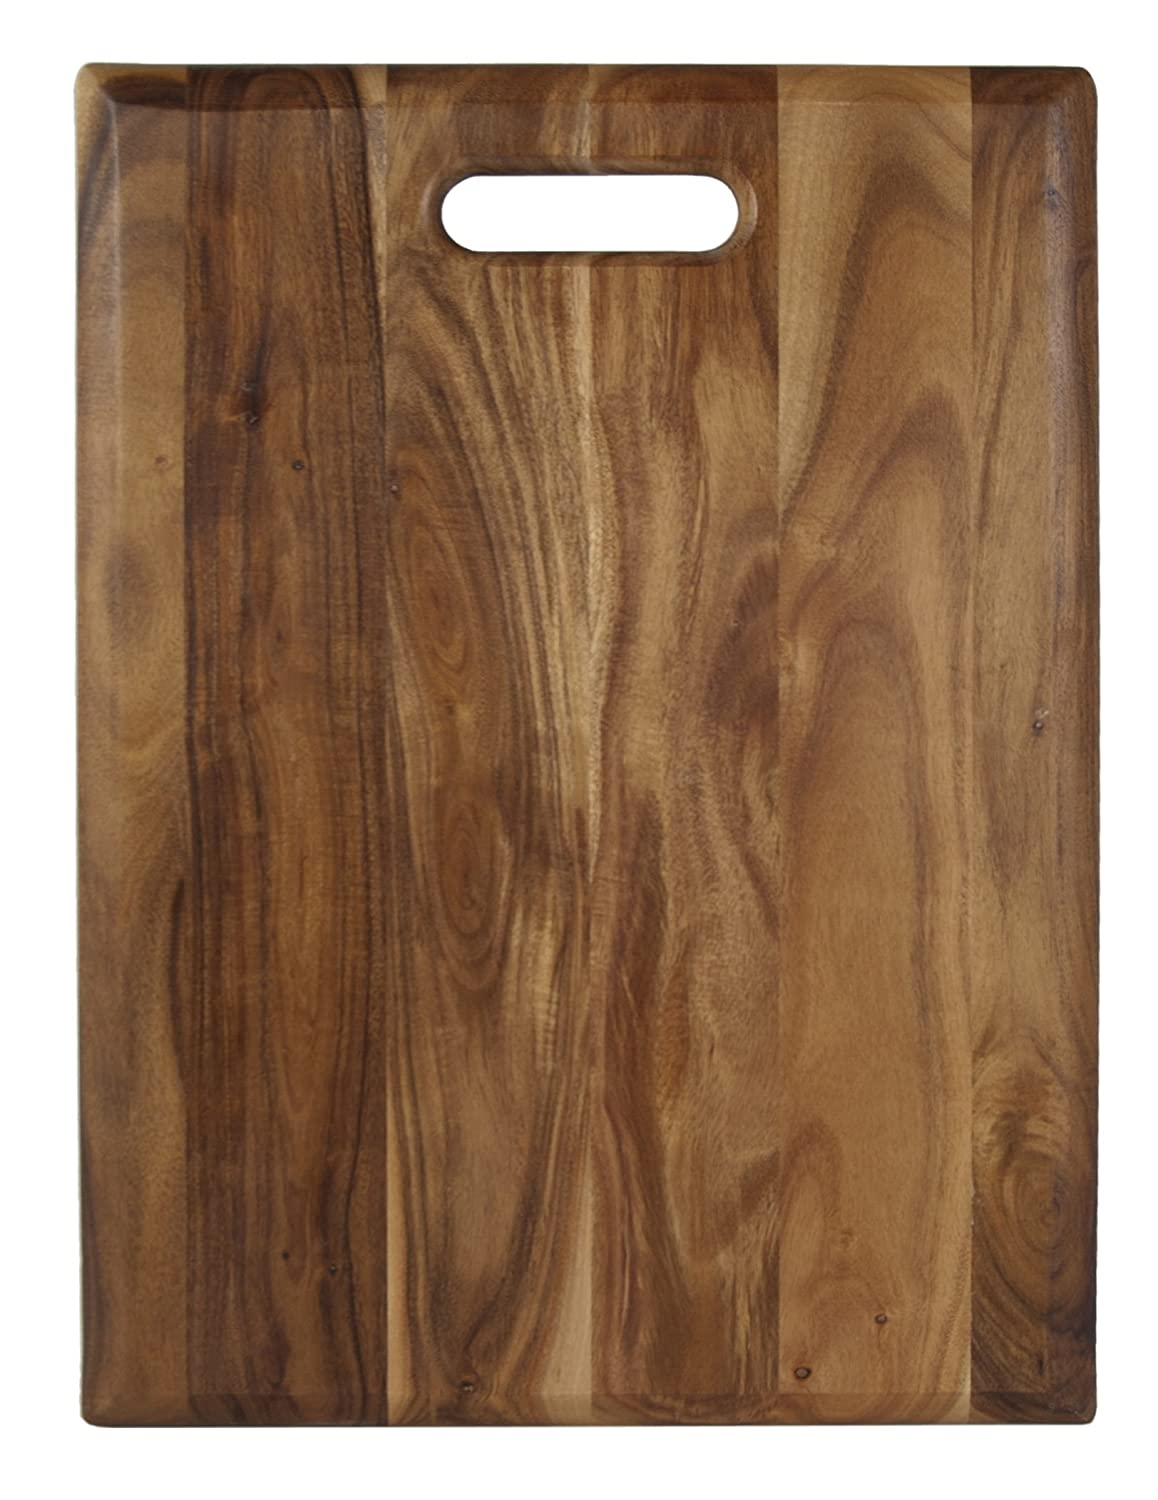 Architec Gripperwood Gourmet Sheesham Cutting Board, 10 by 15-Inch ArchiTEC Housewares GWG15